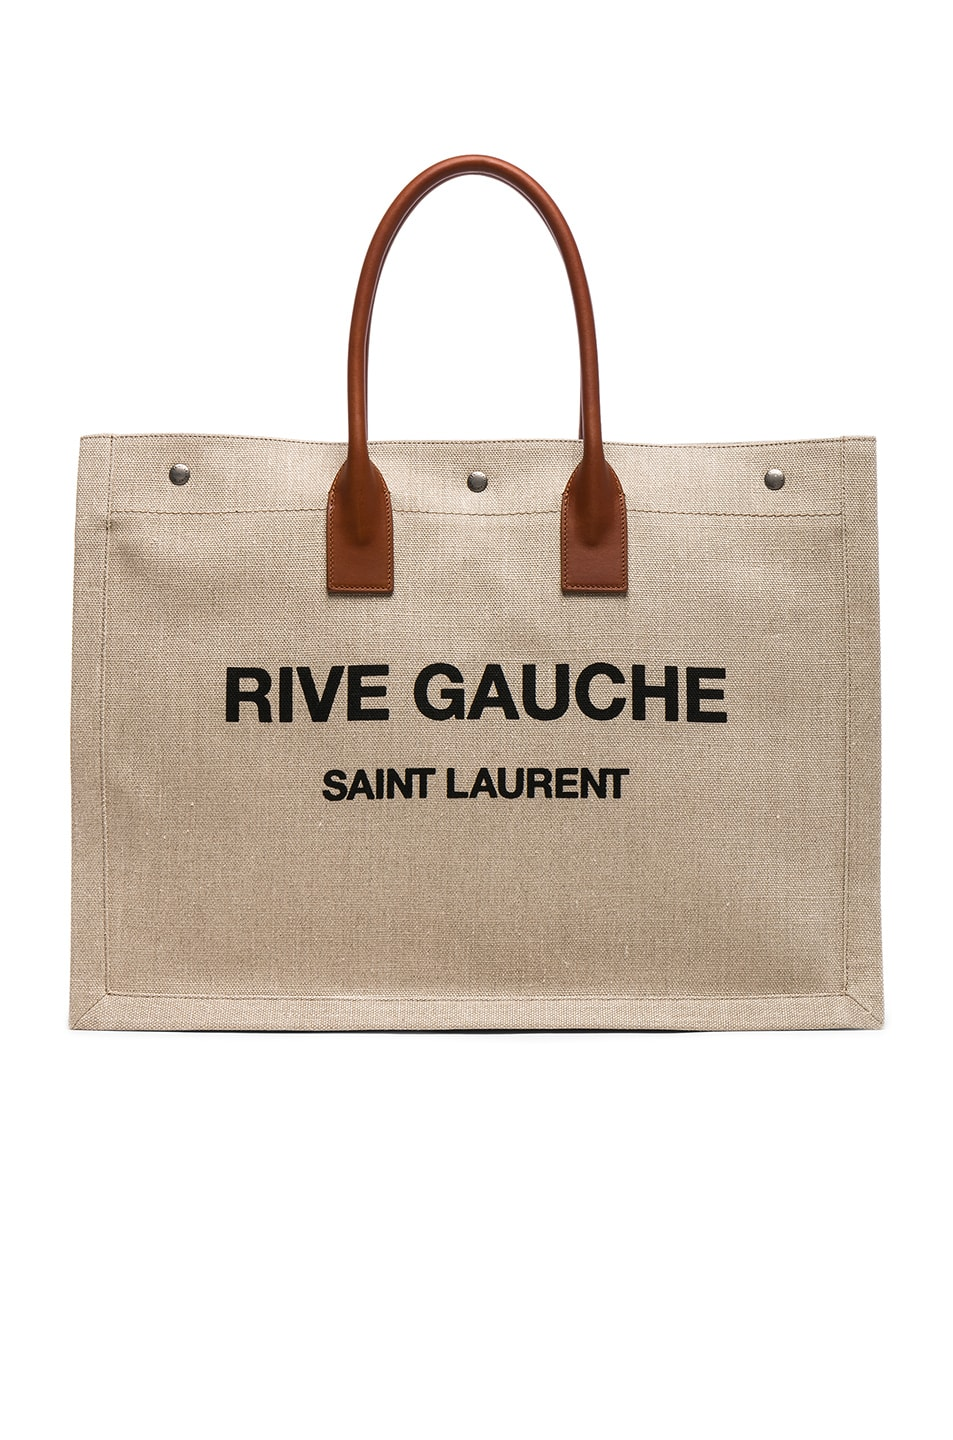 3d11a070d48 Image 1 of Saint Laurent Large Canvas & Leather Rive Gauche Noe Tote in  Natural &